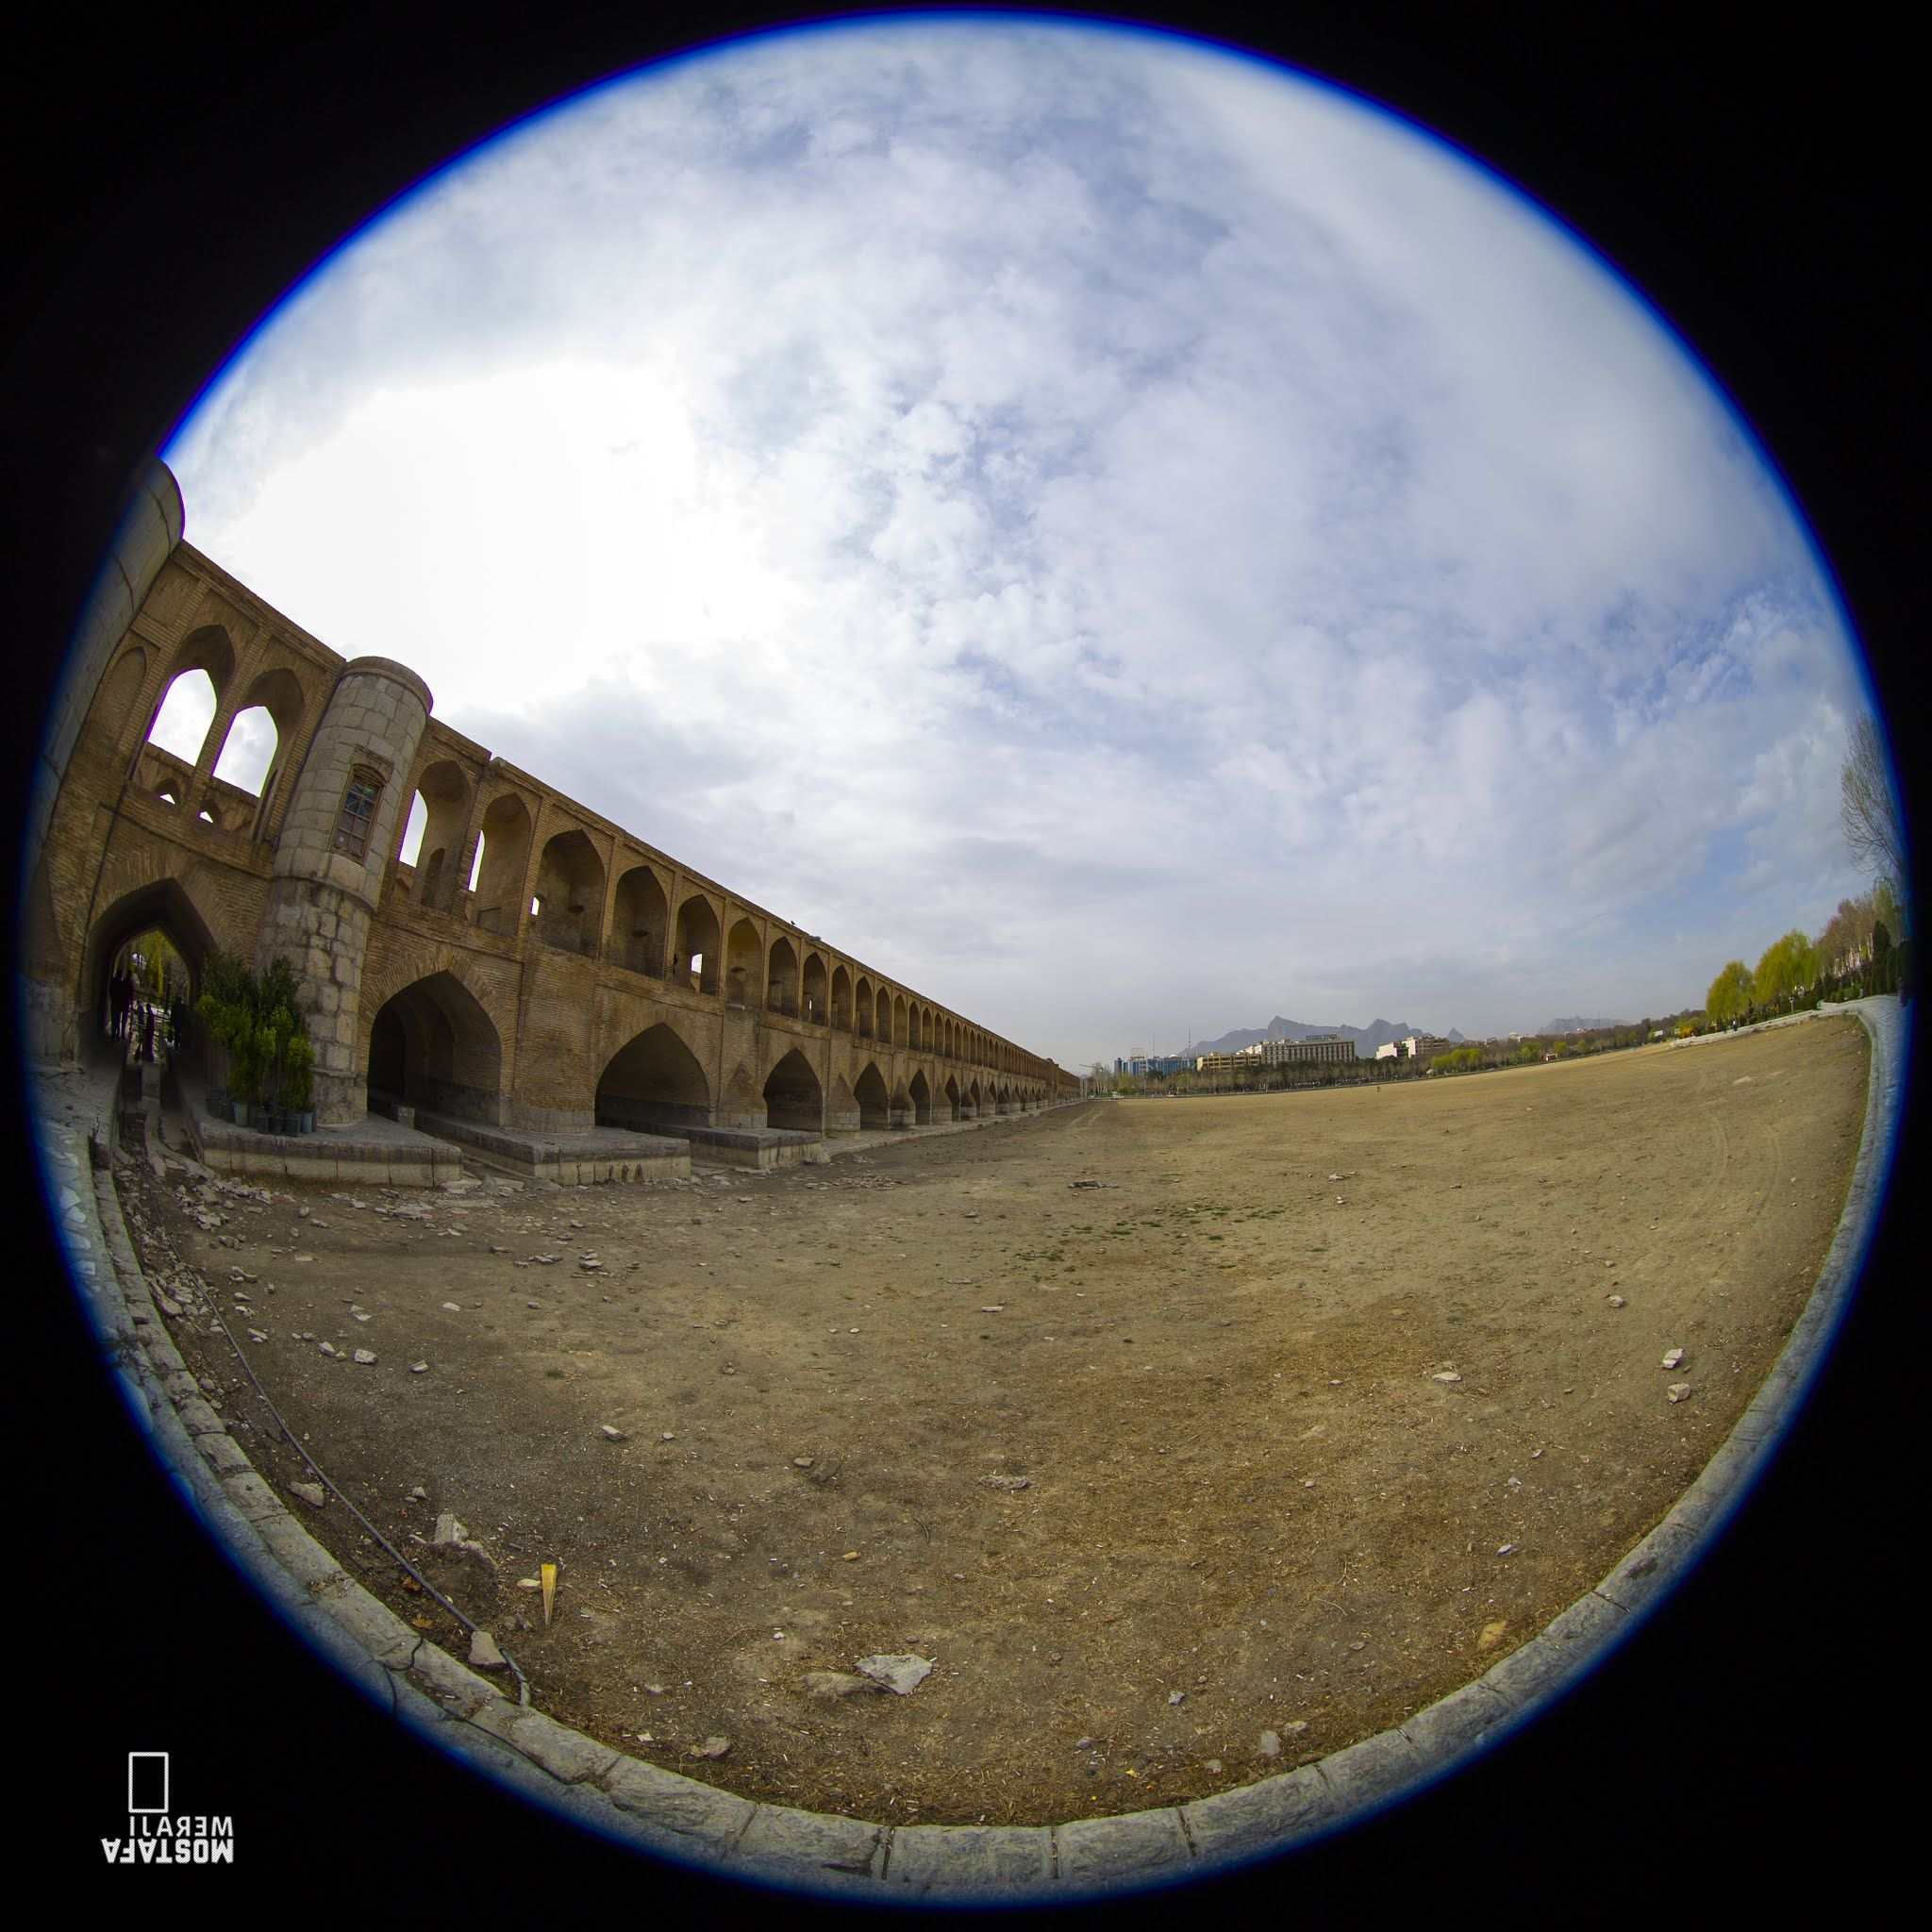 Fisheye Lens Canon Fisheye Lens Iran Mostafa Meraji Monument Monuments Beautiful Iran Architectural Photography Ar With Images Iran Pictures Pictures Instagram